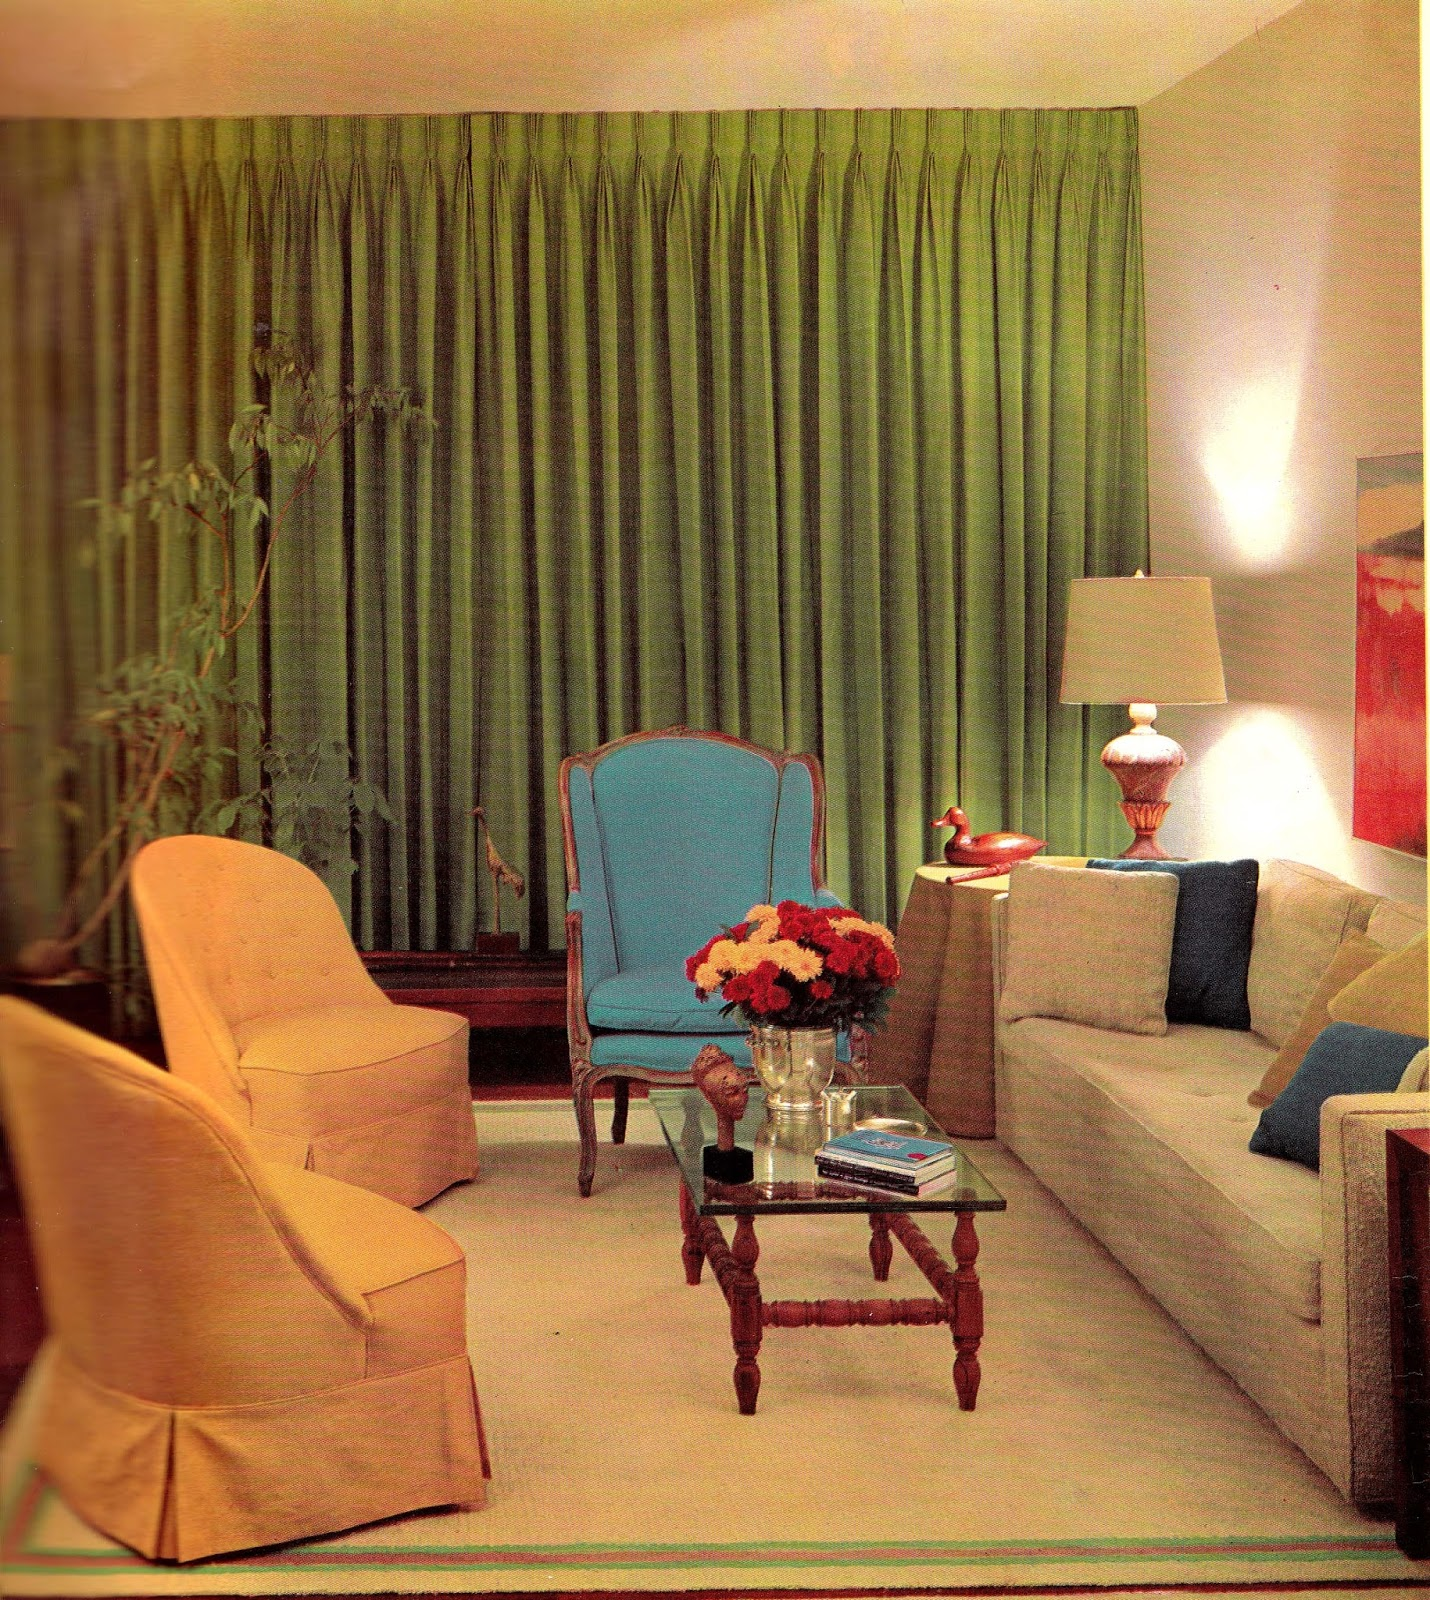 Interior Decoration 1960s Interior Décor The Decade Of Psychedelia Gave Rise